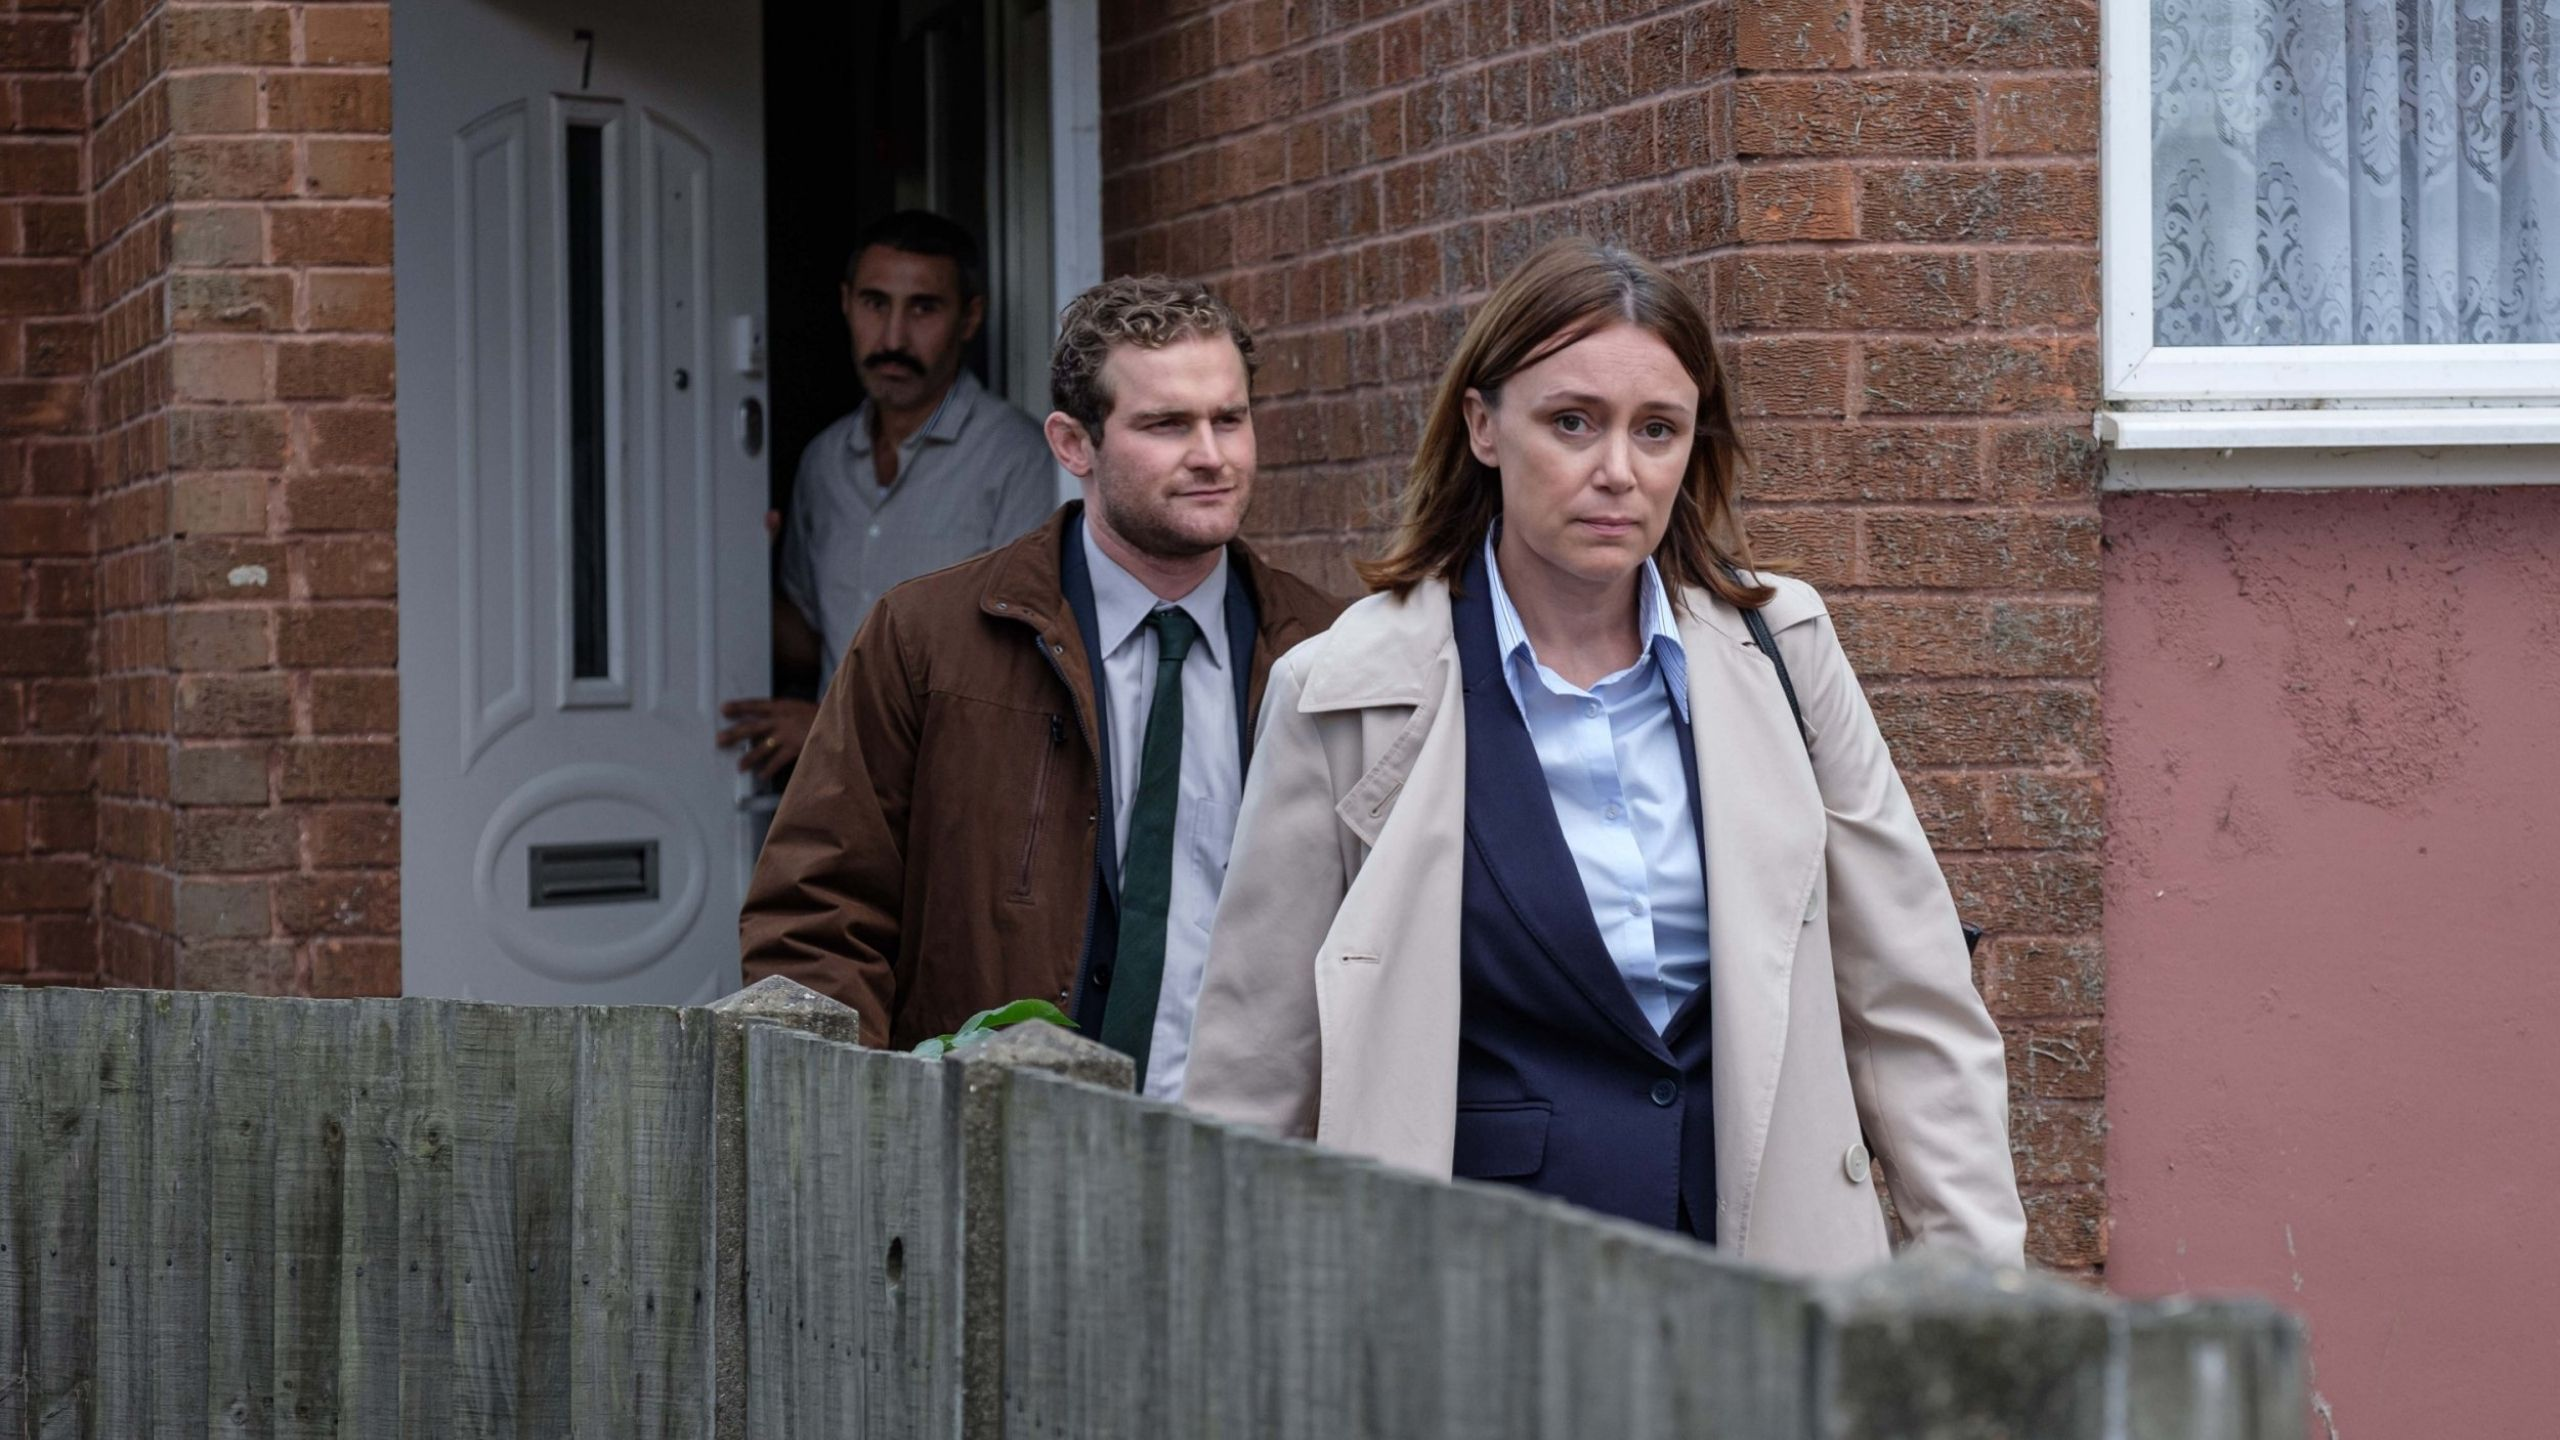 Keeley Hawes as a lead detective shown leaving a house looking tired